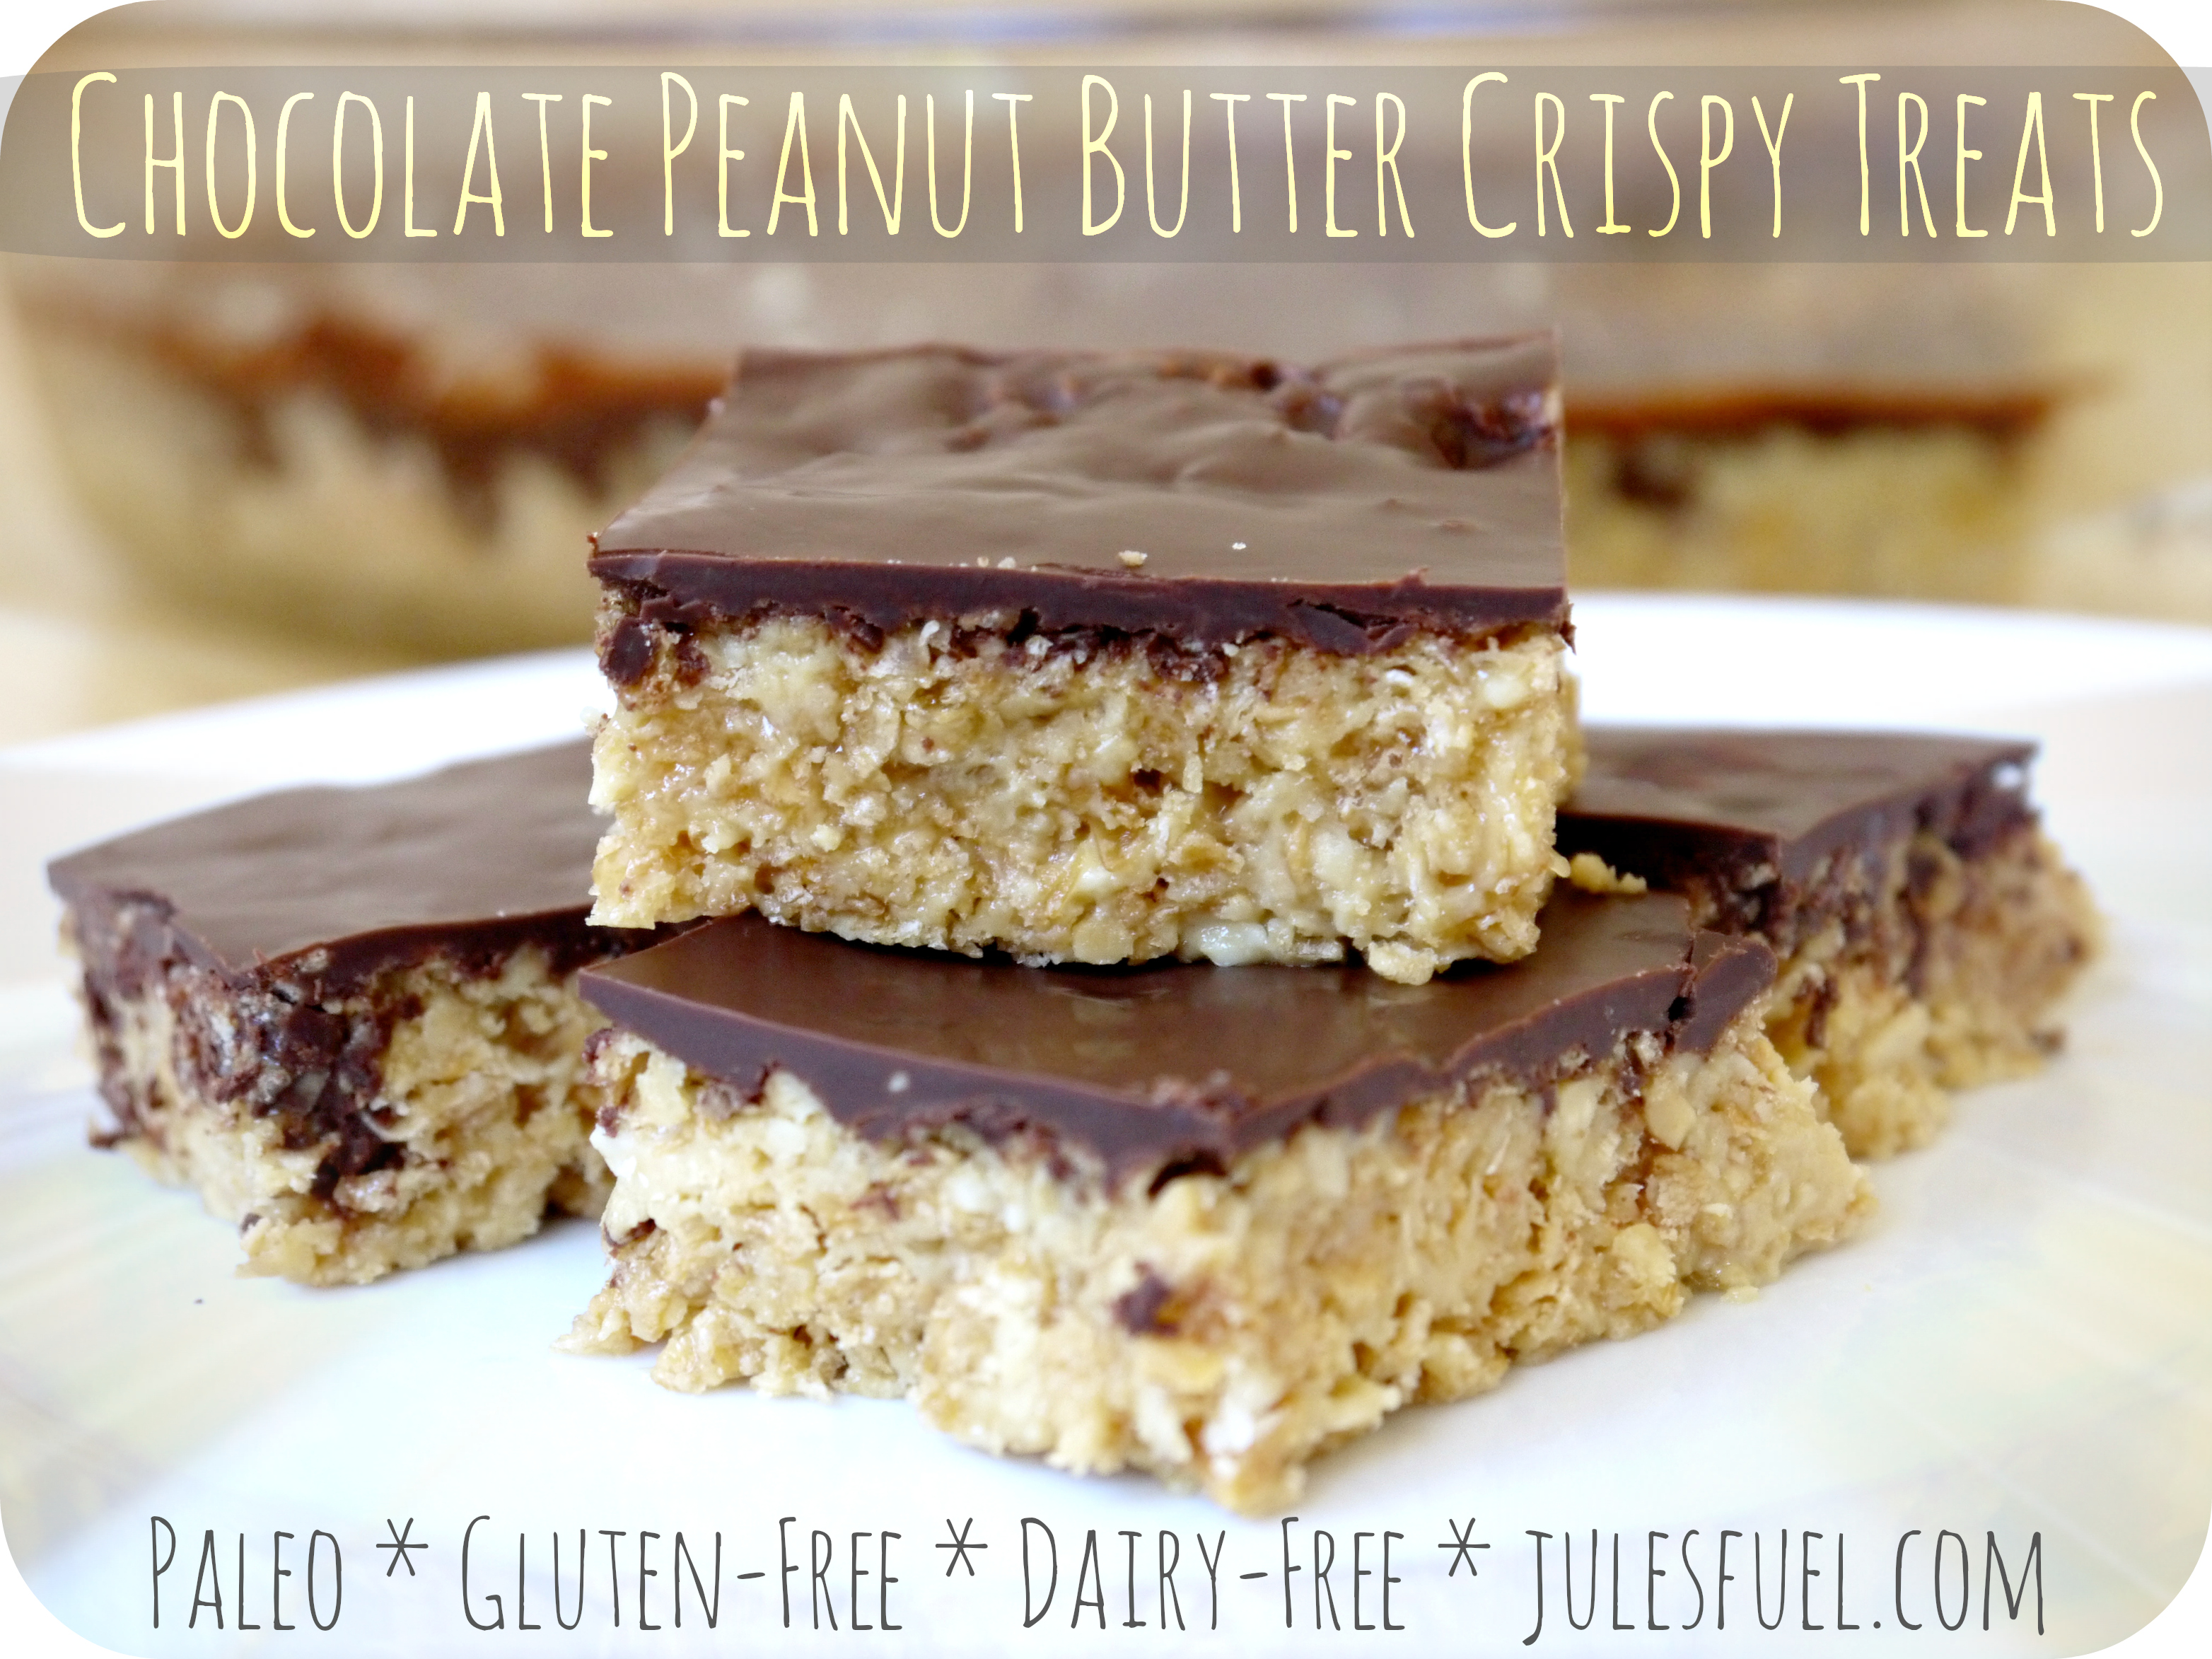 Choc PB Crispy Treats